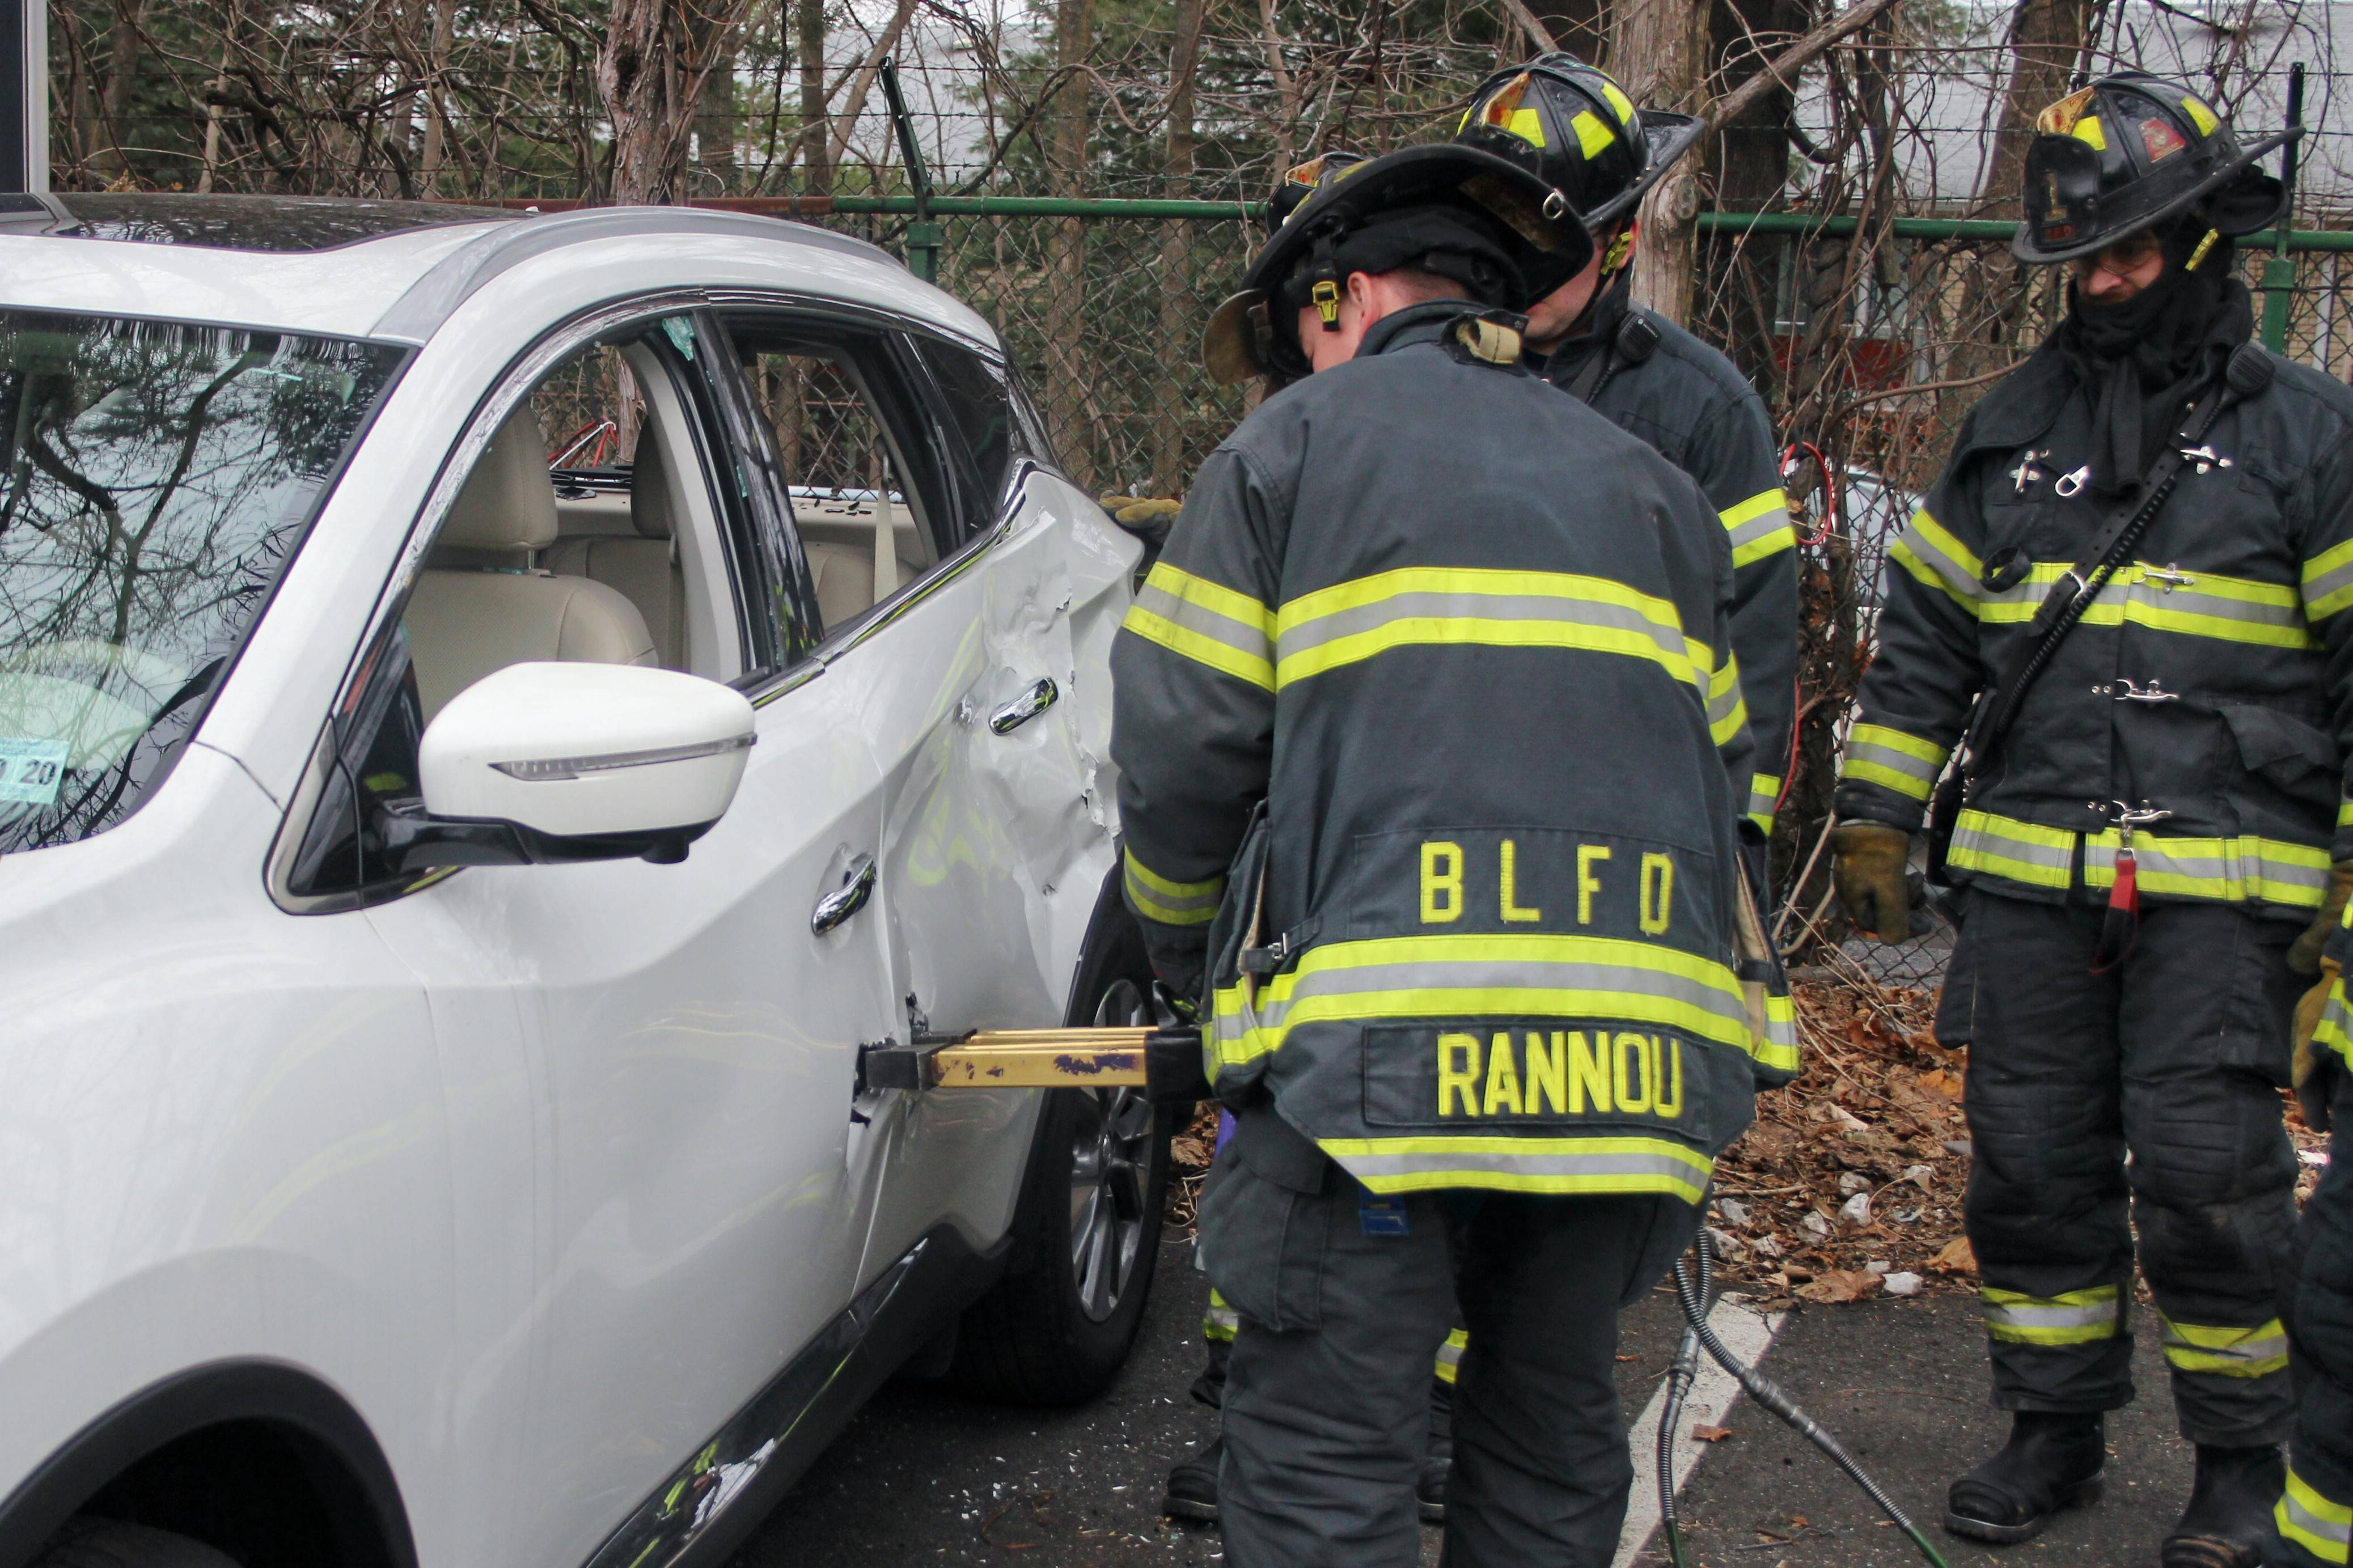 859ae0d9c2e5b86dbe03_Nissan_Murano_Bloomfield_Fire_Department_Training_020.jpg